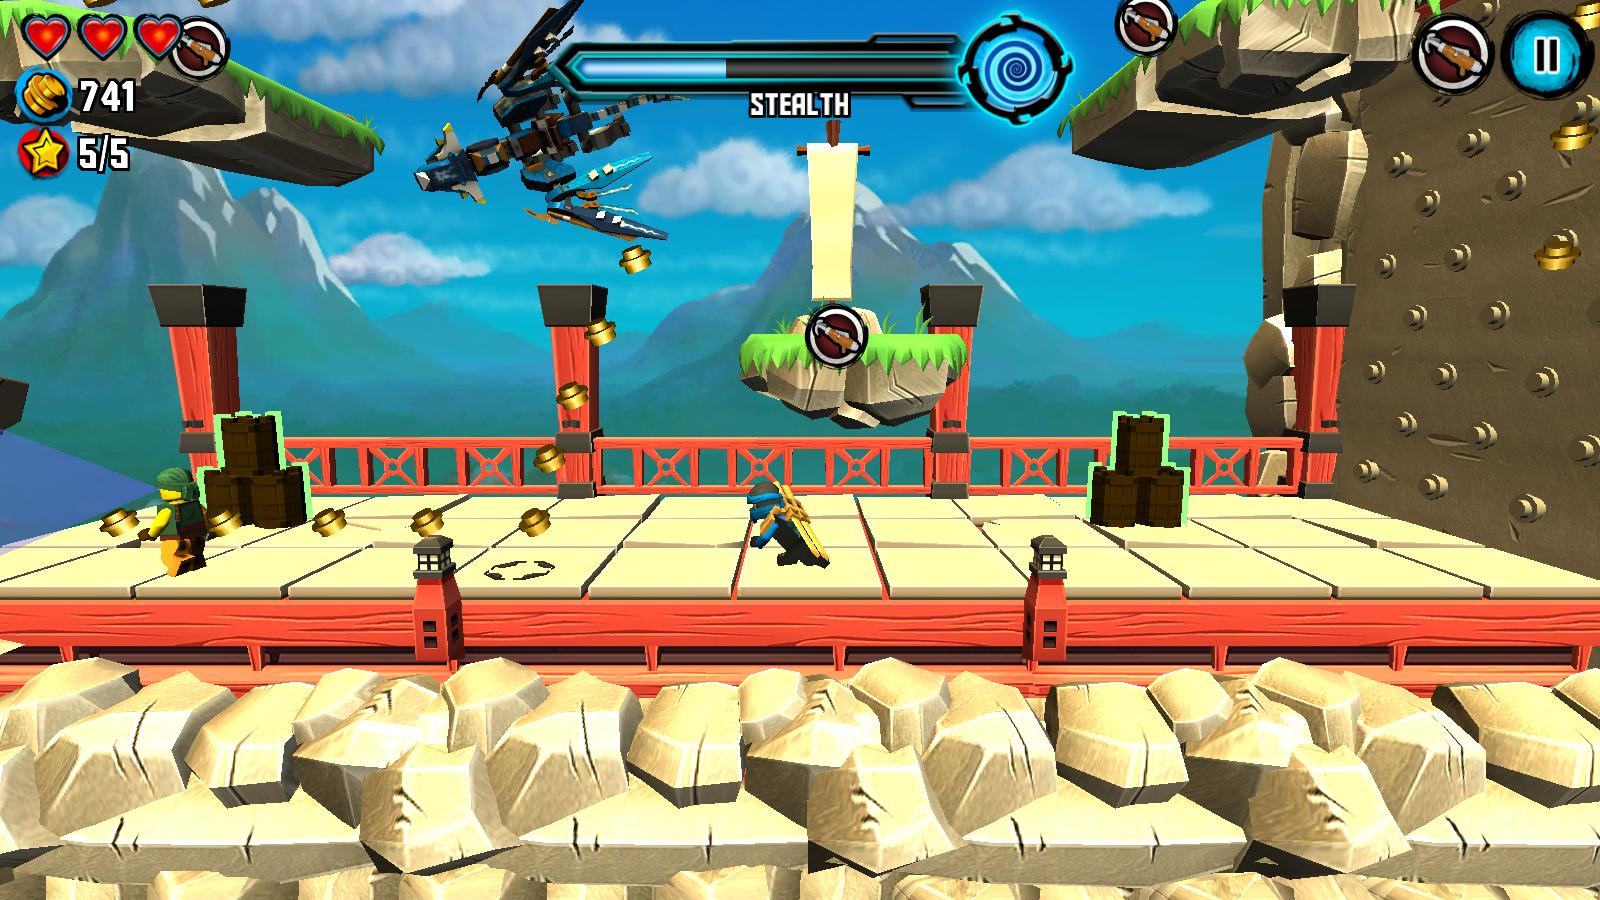 LEGO® Ninjago™: Skybound for Android - APK Download